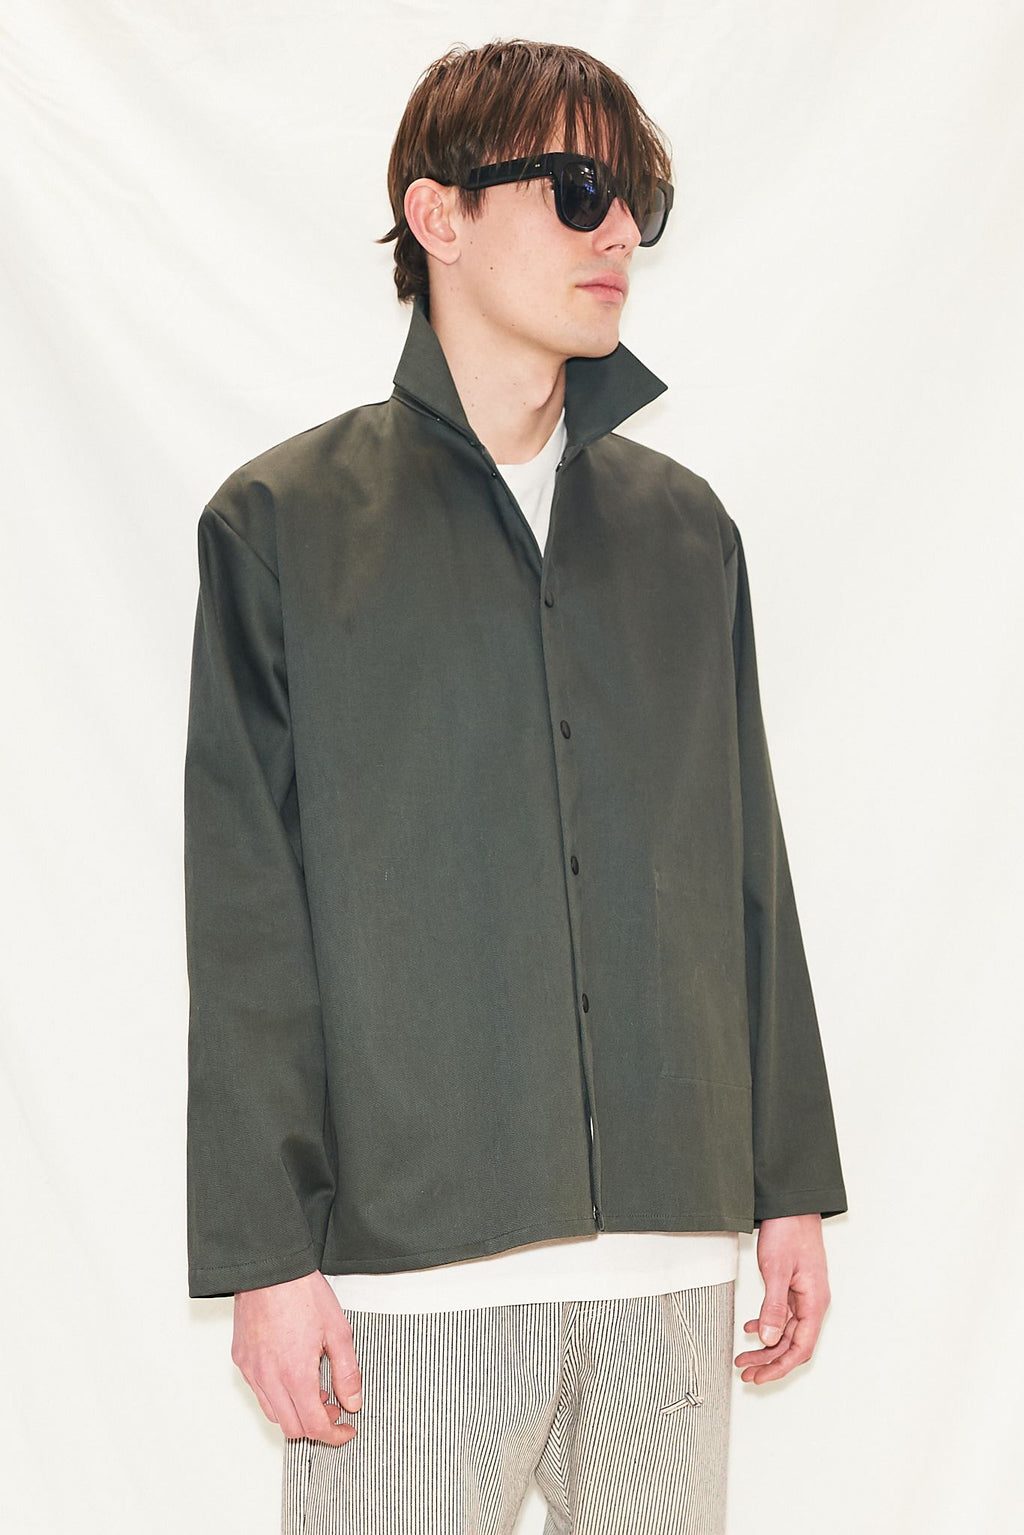 Army Snap Shirtcoat